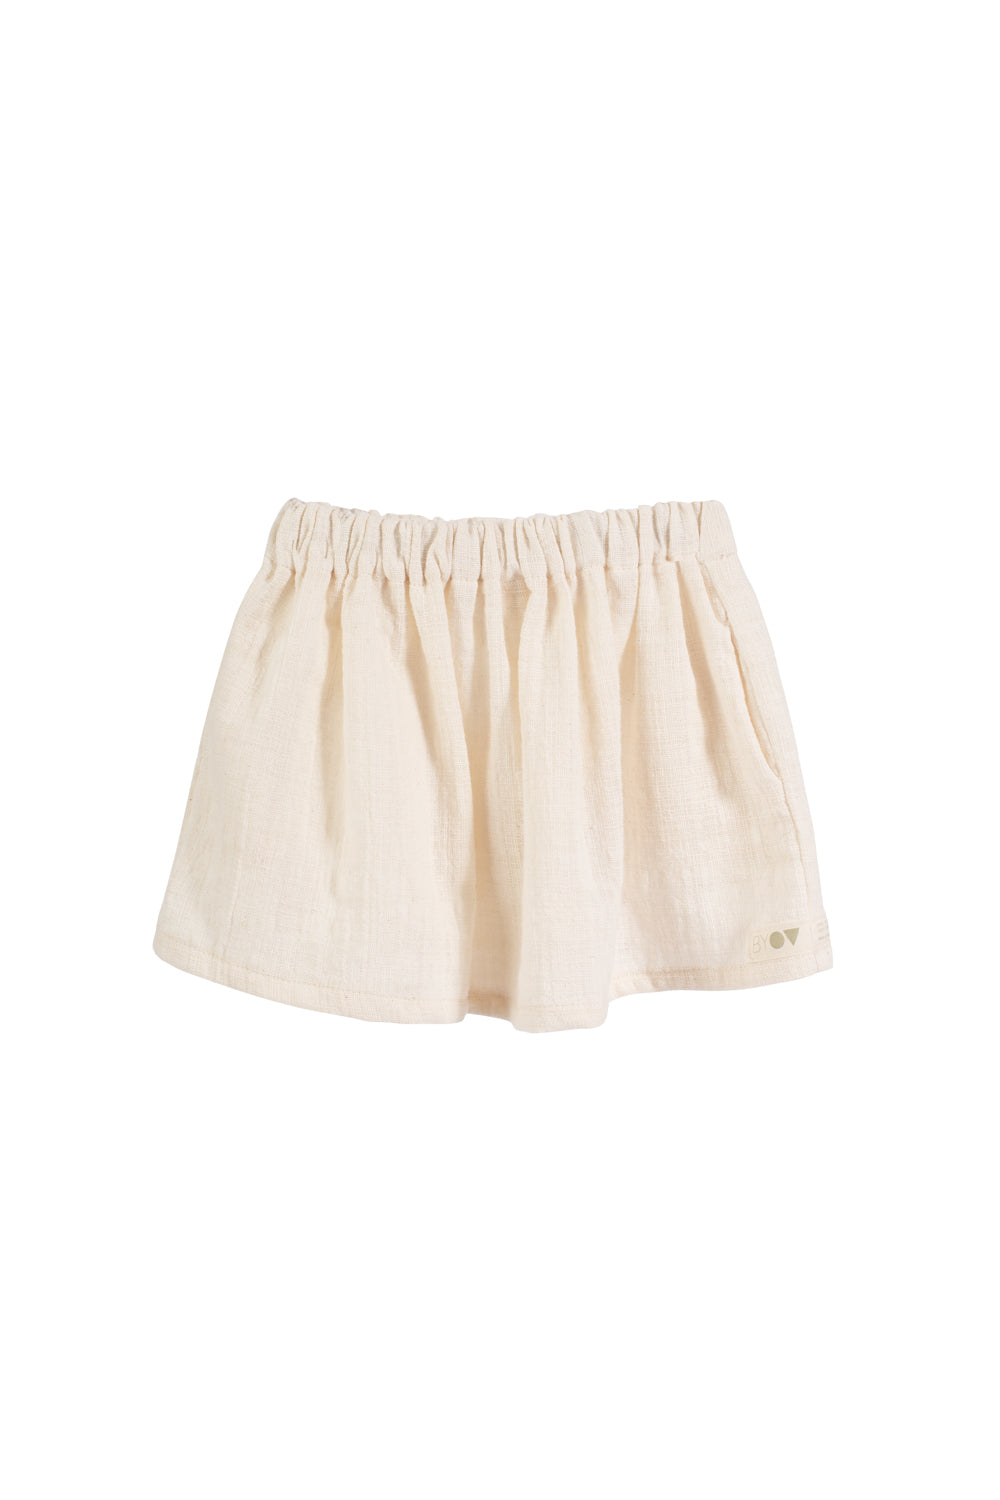 Field | ecru skirt